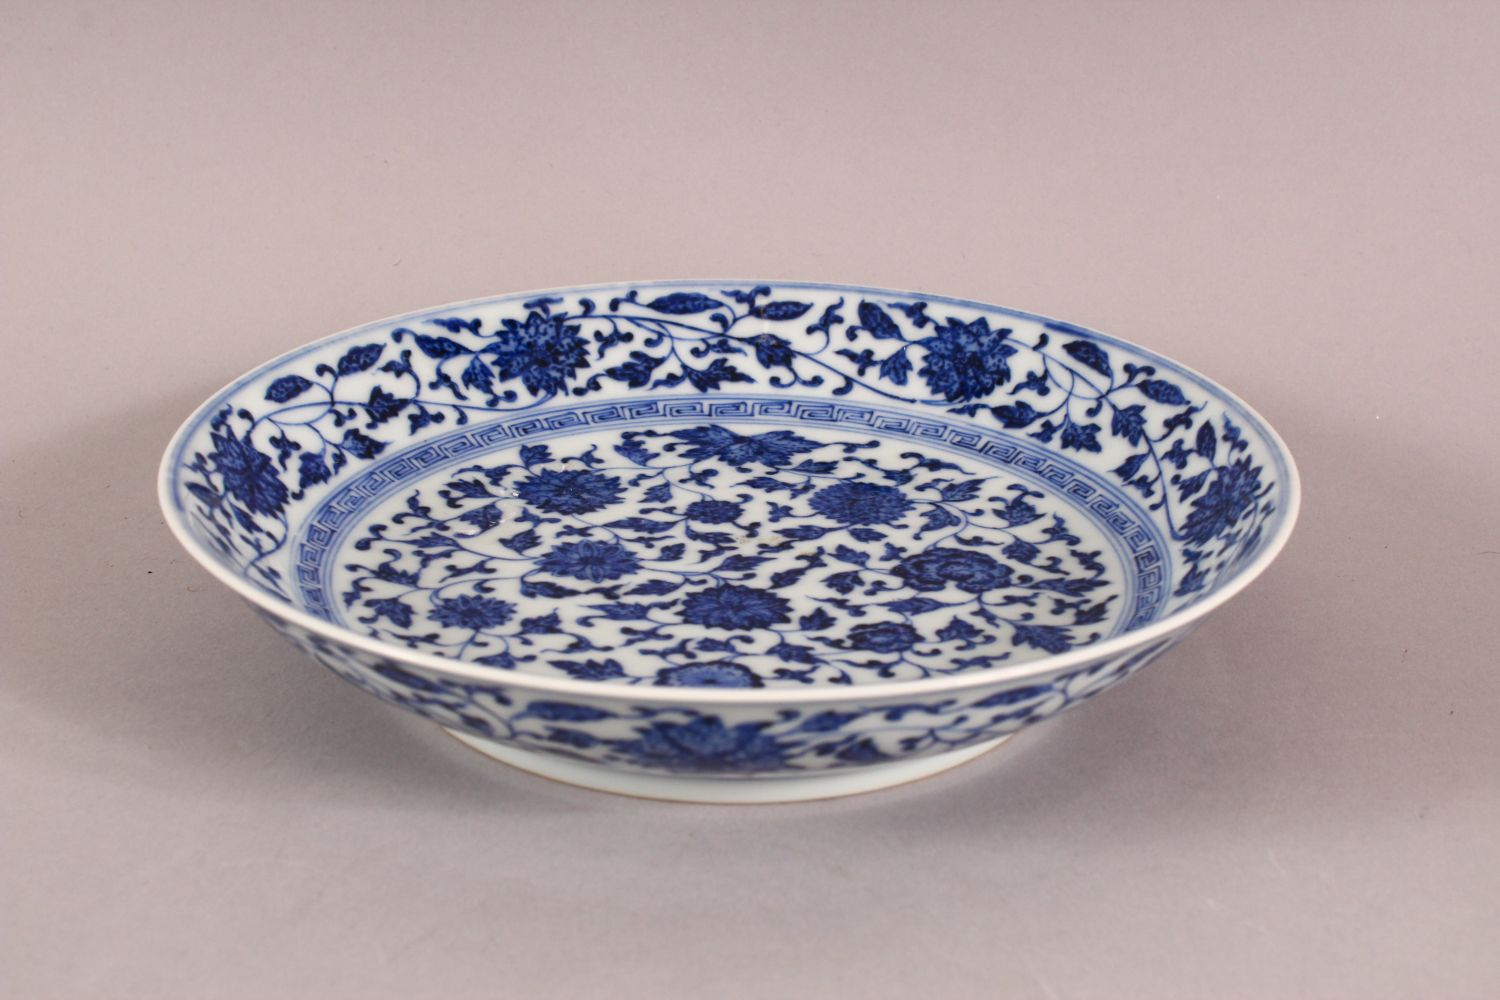 A CHINESE BLUE & WHITE PORCELAIN LOTUS DISH, decorated with sprays of lotus, the underside with a - Image 3 of 5